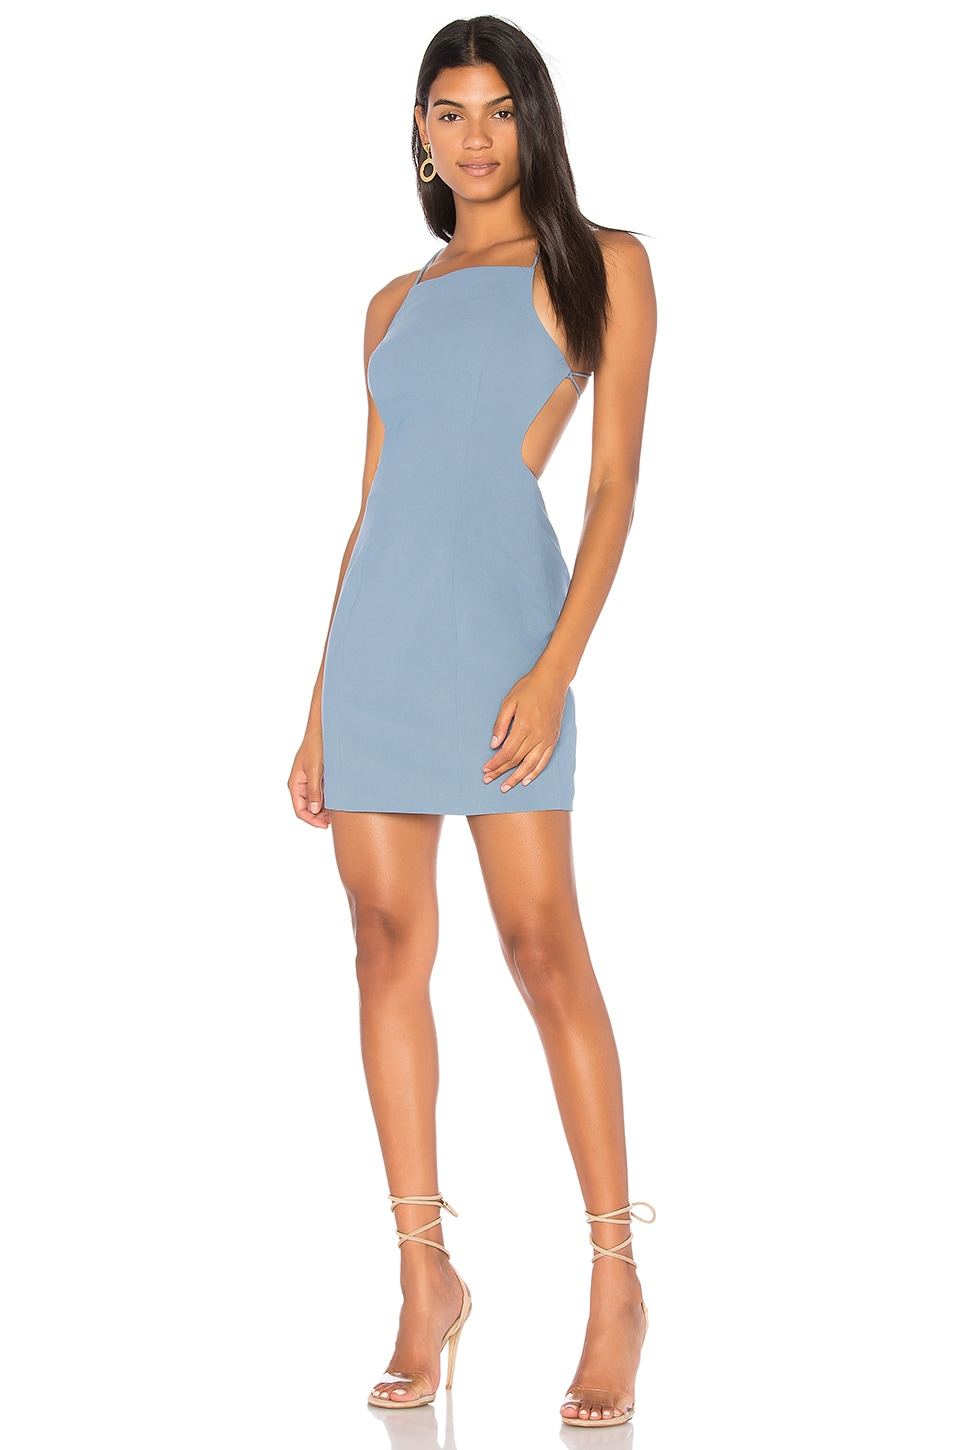 Finders Keepers Vice Dress in Washed Blue